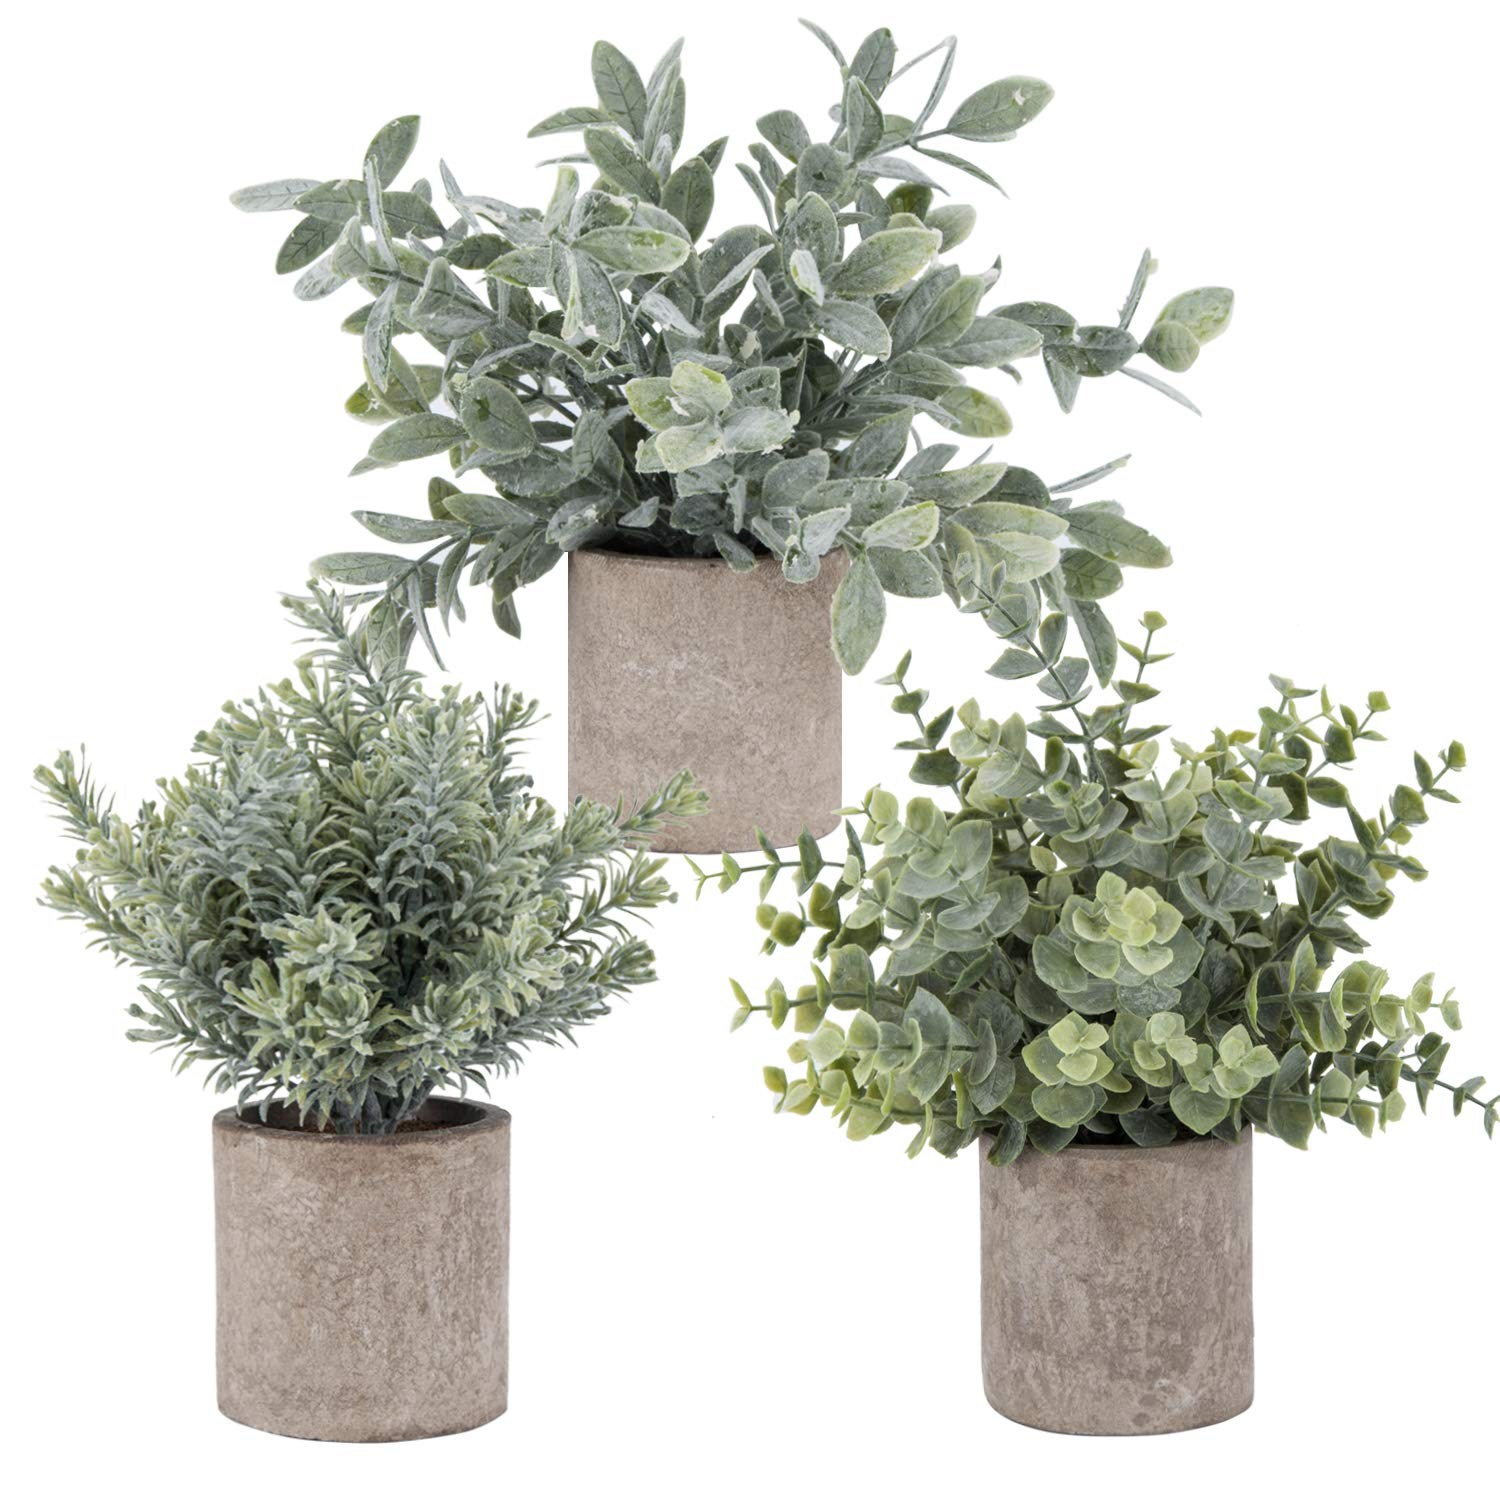 3 Pack Mini Potted Artificial Eucalyptus Plants Plastic Fake Green Rosemary Plant for Home Office Desk Room Decoration by Der Rose